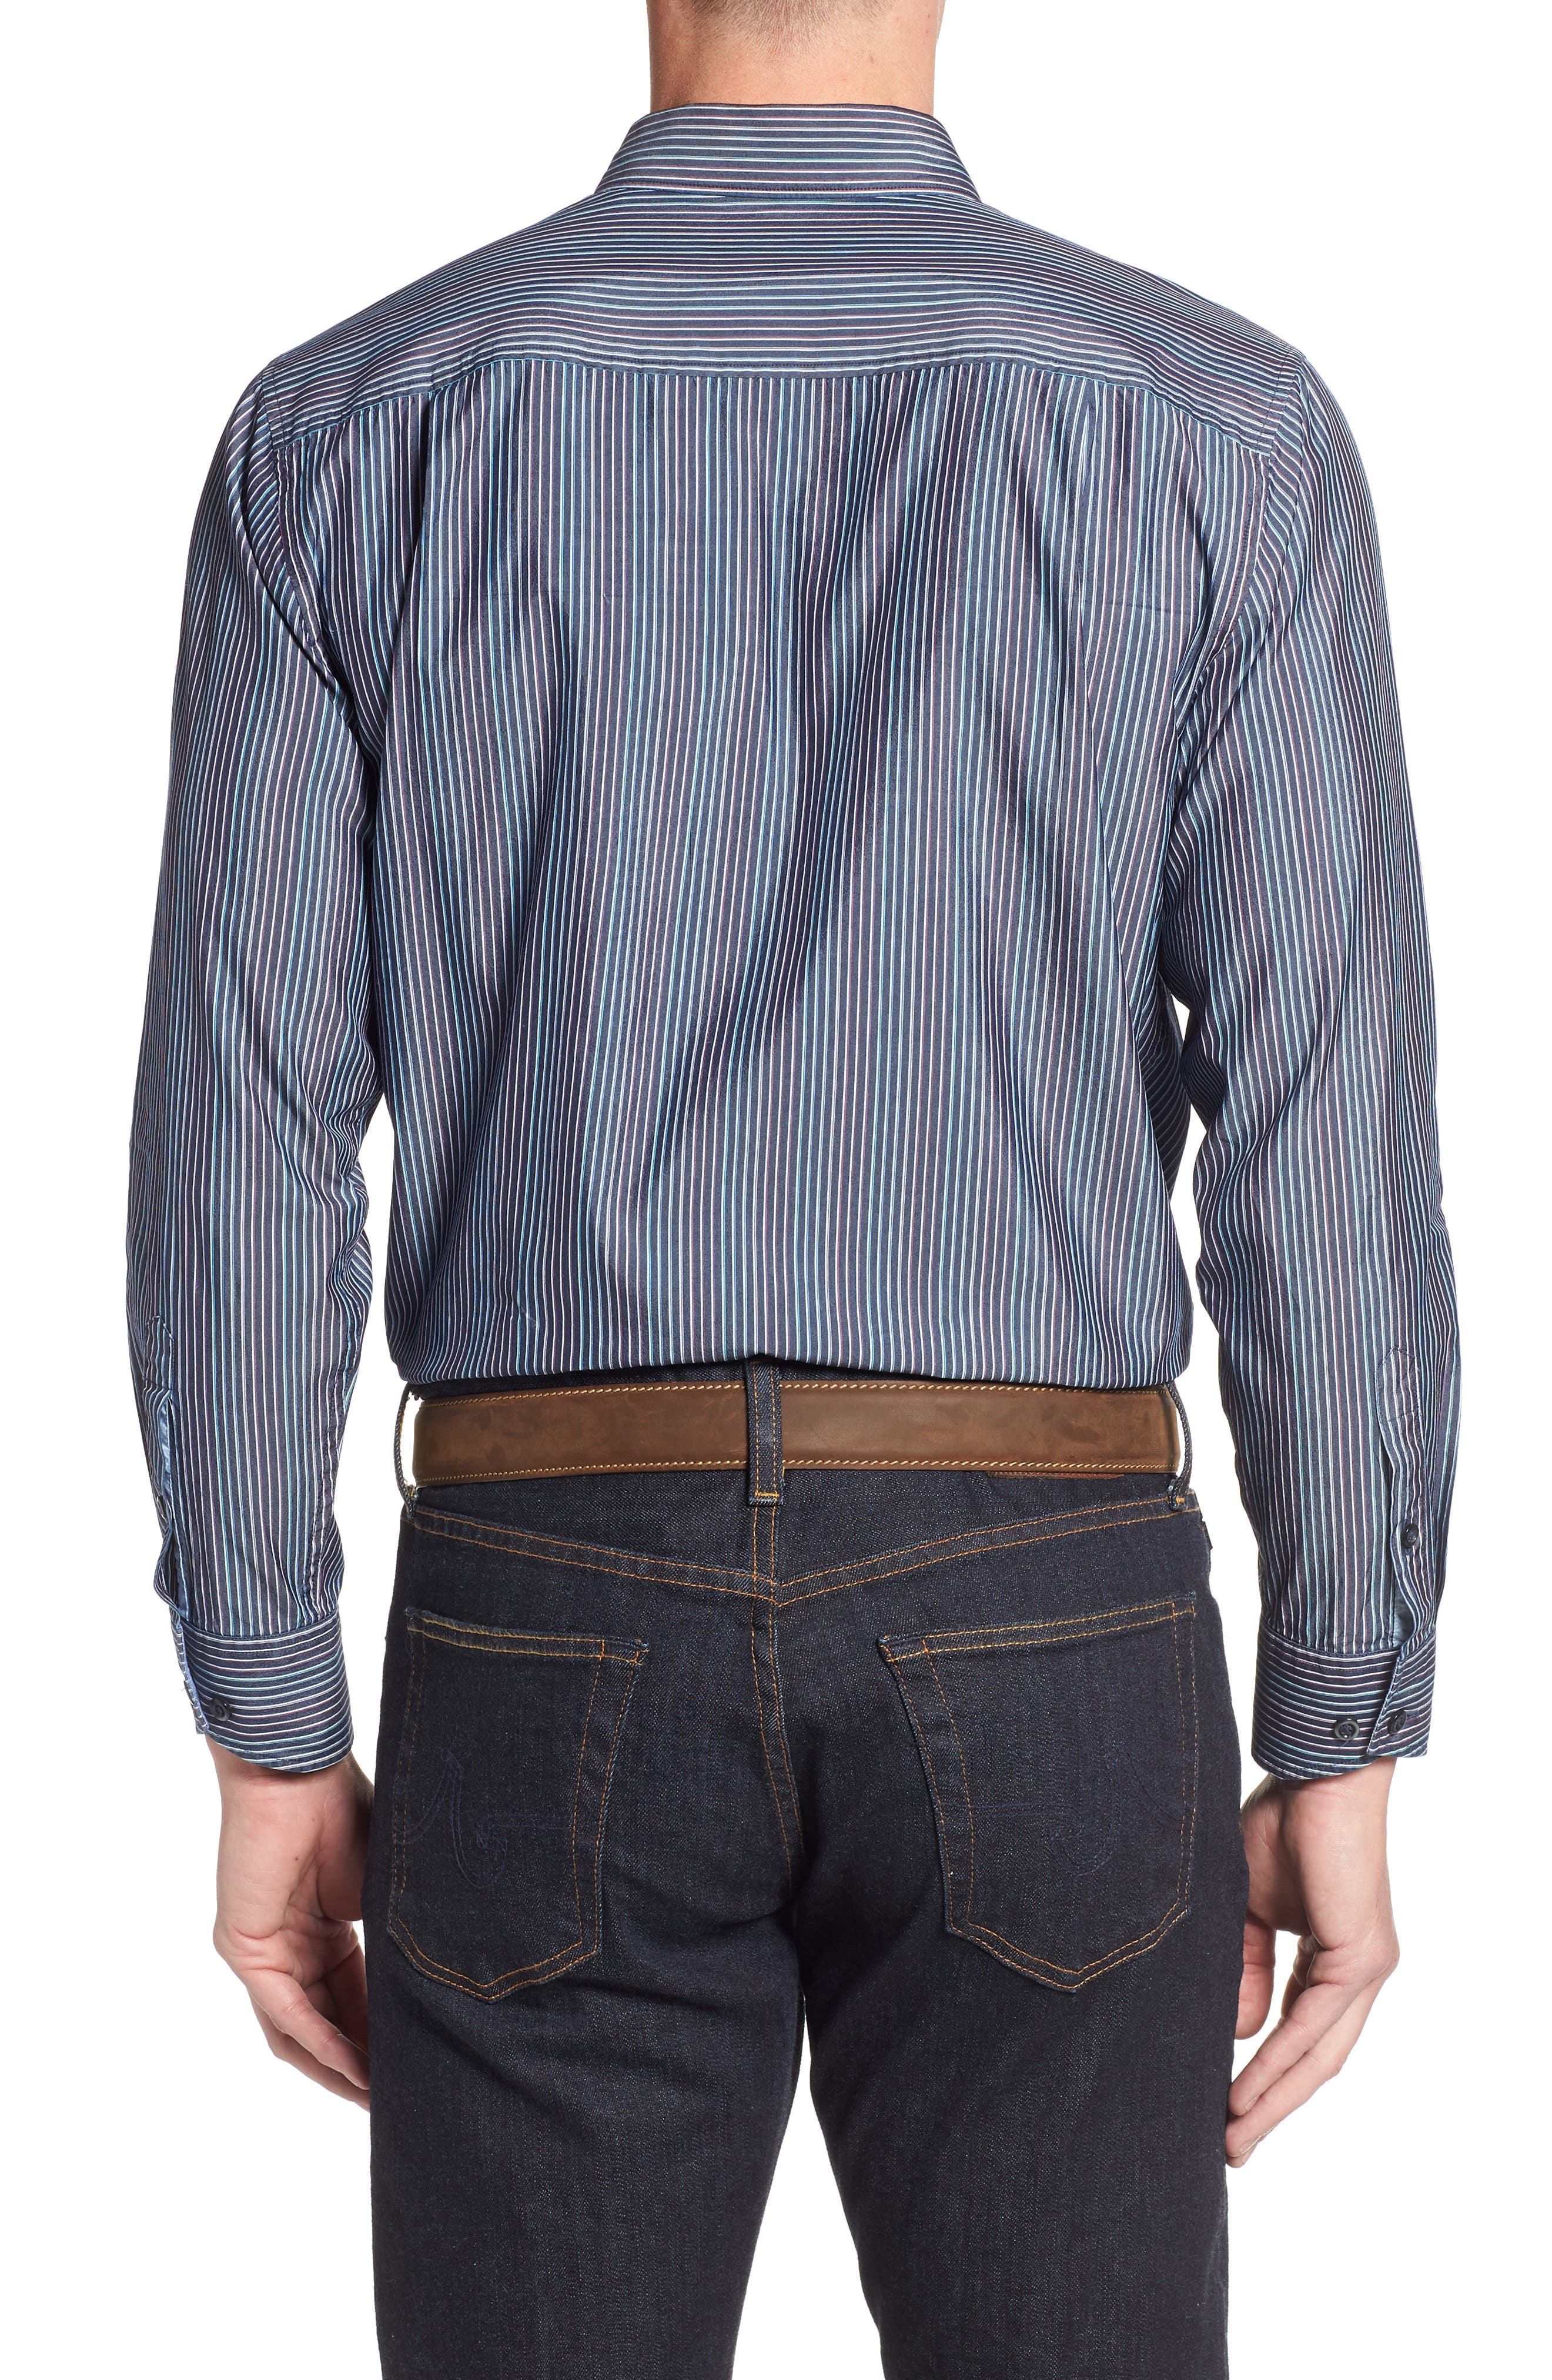 TOMMY BAHAMA,                             Paradiso Prism Stripe Sport Shirt,                             Alternate thumbnail 2, color,                             400